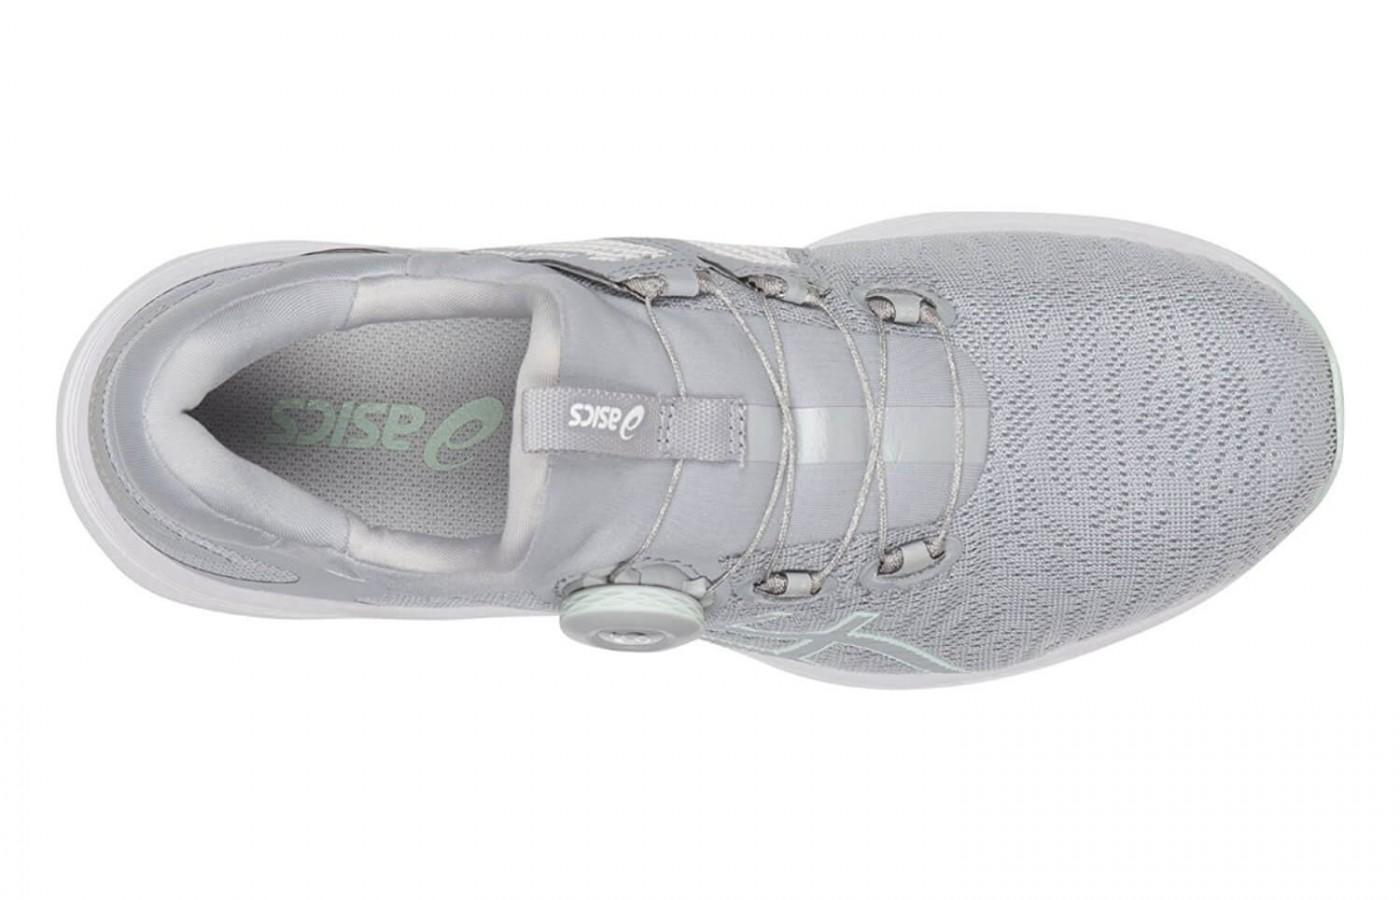 The Asics Dynamis uses seamless construction to reduce the risk of irritation